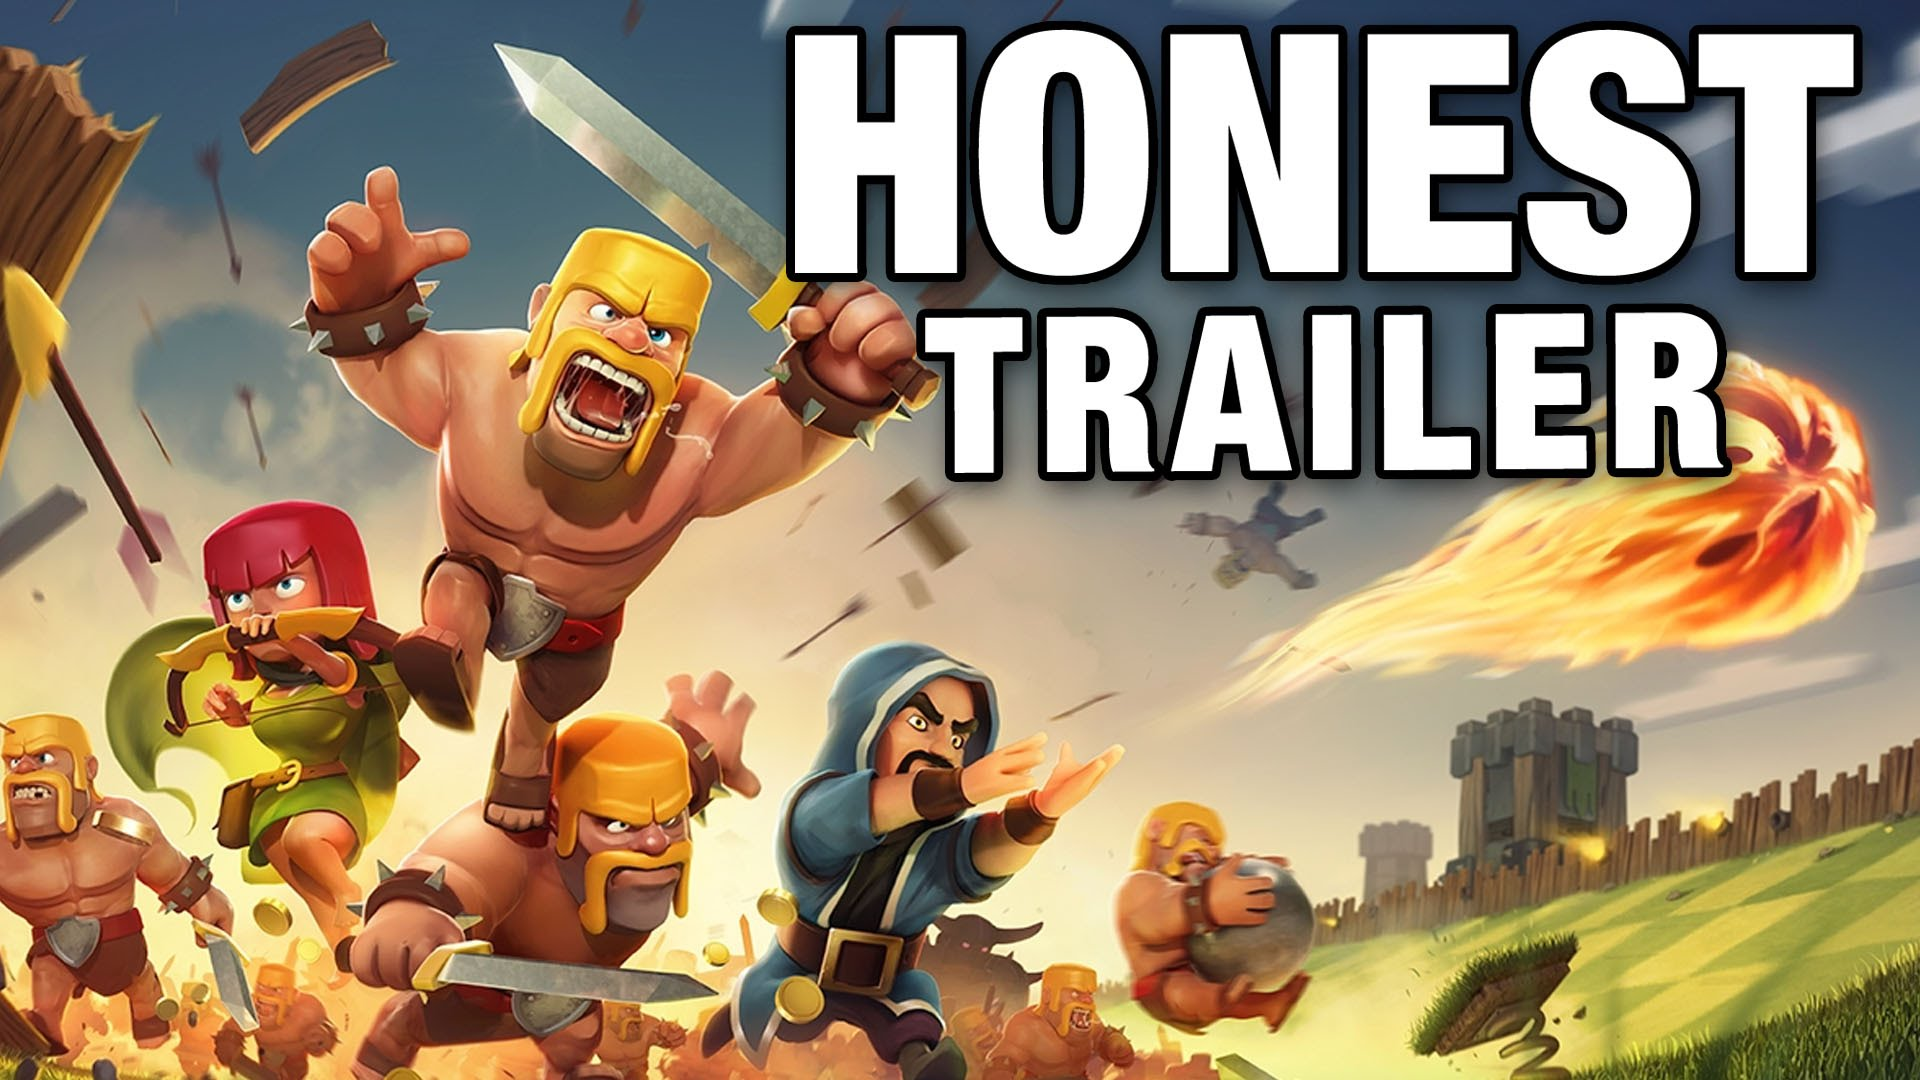 An Honest Trailer for the Mobile MMO Strategy Video Game